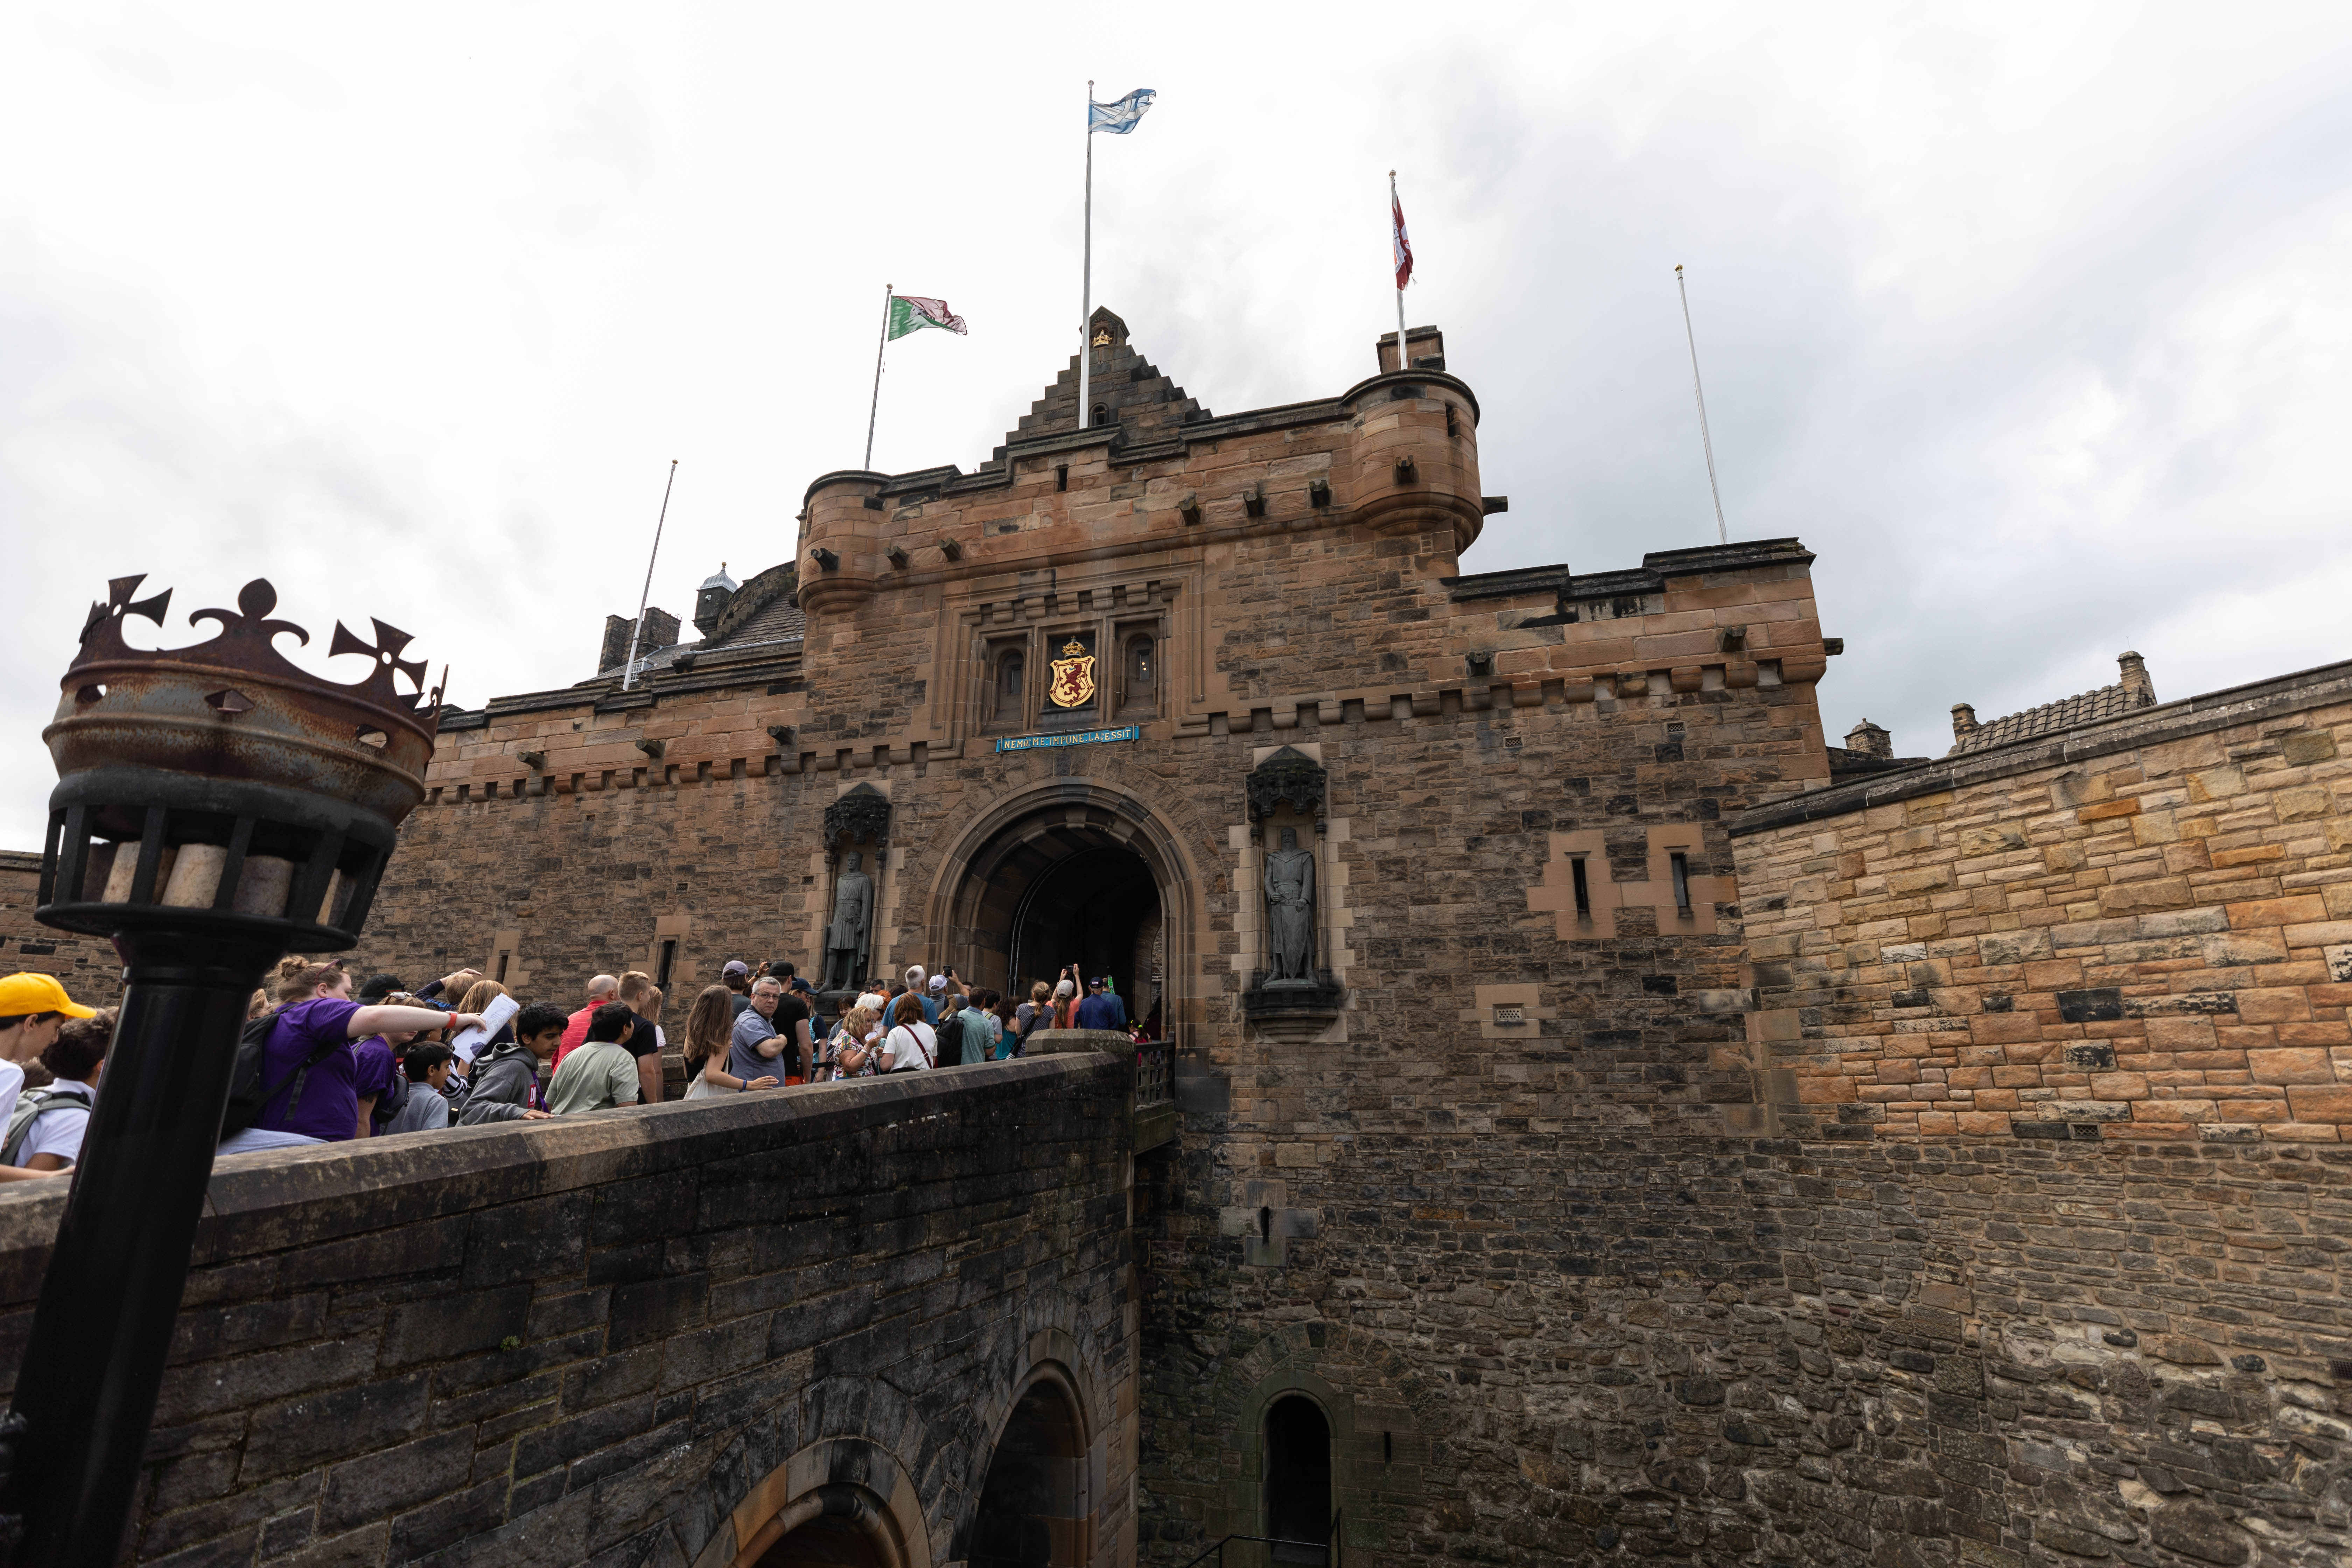 Edinburgh Castle Scotland's Most Beautiful Castles Scotland's Capital City Incredible Architecture Things to do in Edinburgh by Annie Fairfax @AnnieFairfax